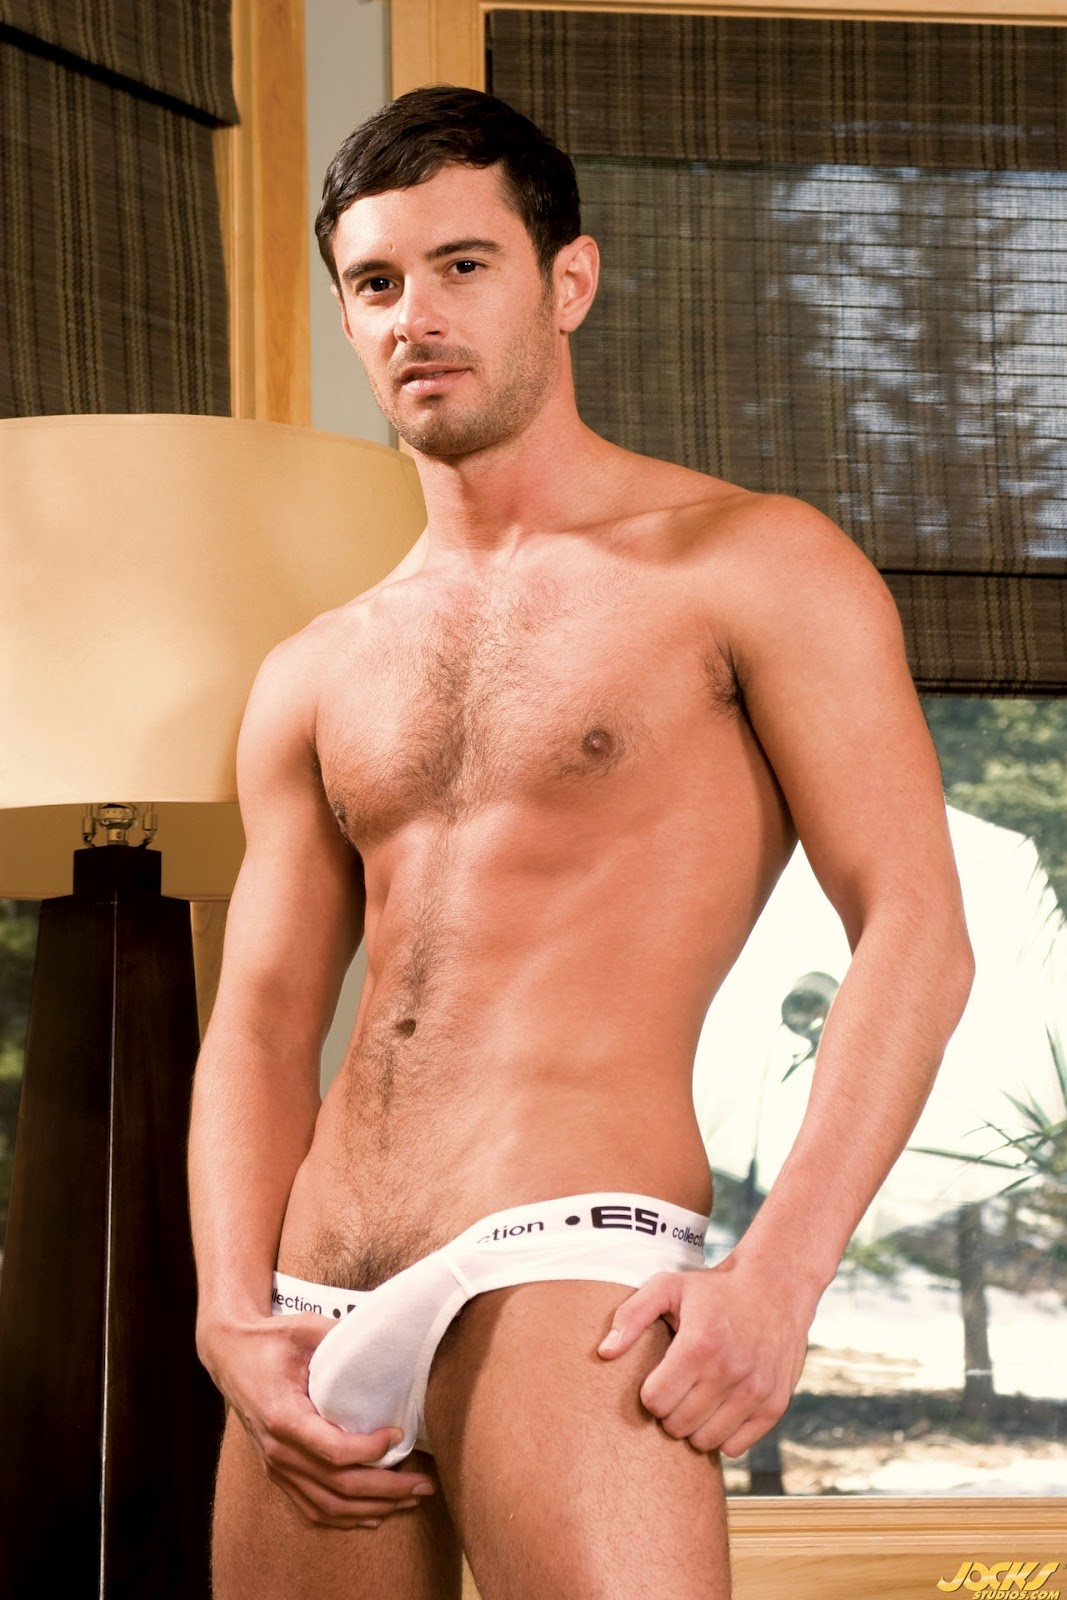 donny wright gay porn Free Donny Wright gay porn videos and Sex Videos at PornTube.com.